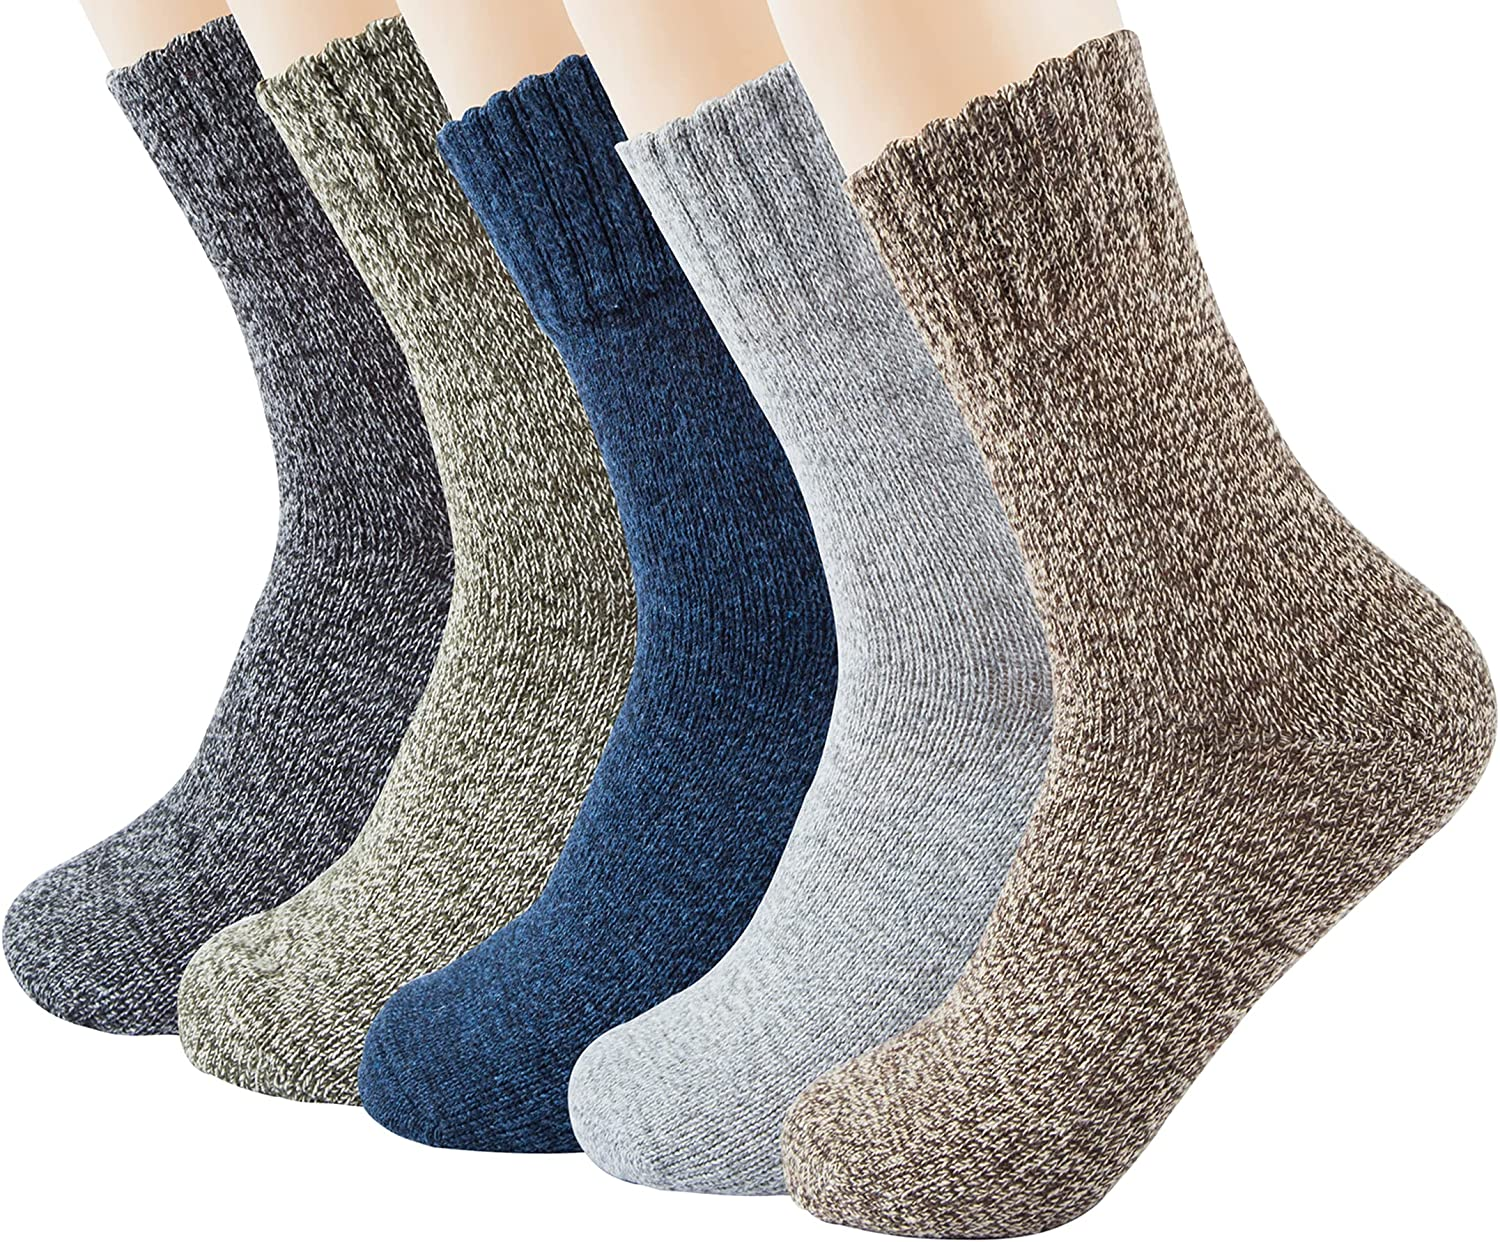 5 Pairs Womens Wool Socks Winter Warm Thick Knit Cabin Cozy Casual Crew Socks Gifts